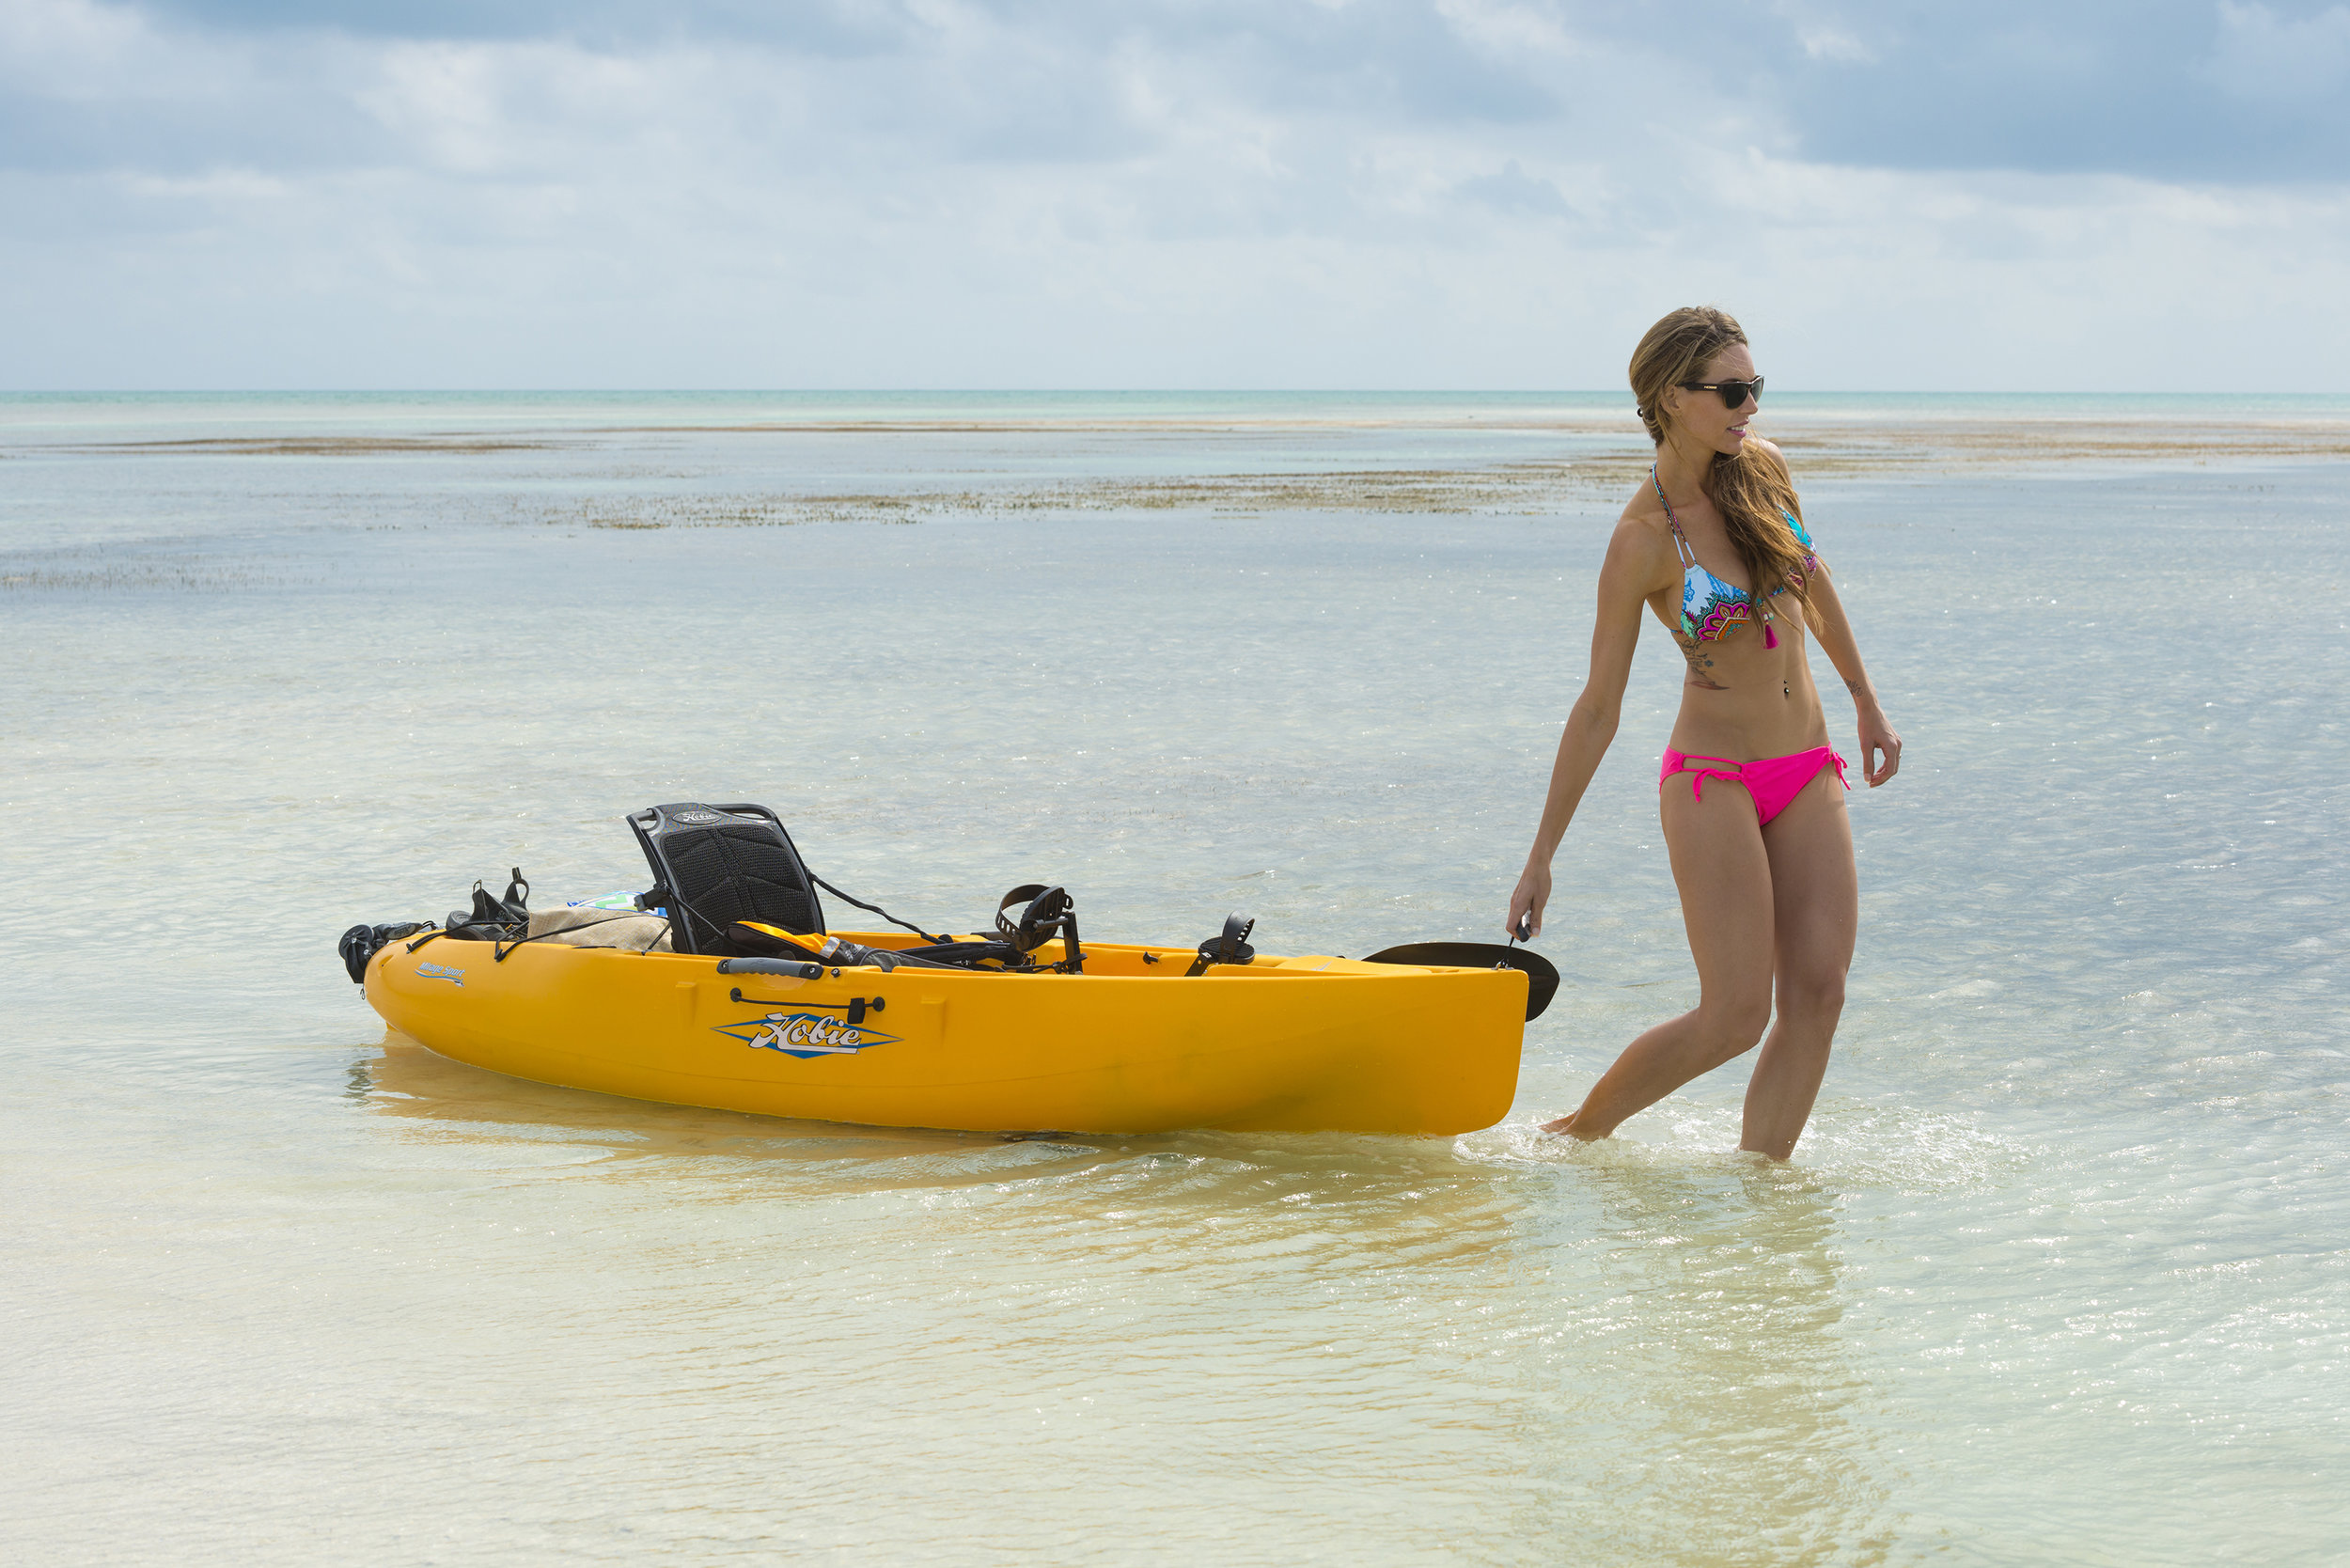 Sport-action-yellow-Florida-Martin-Root-wading-lg.jpg